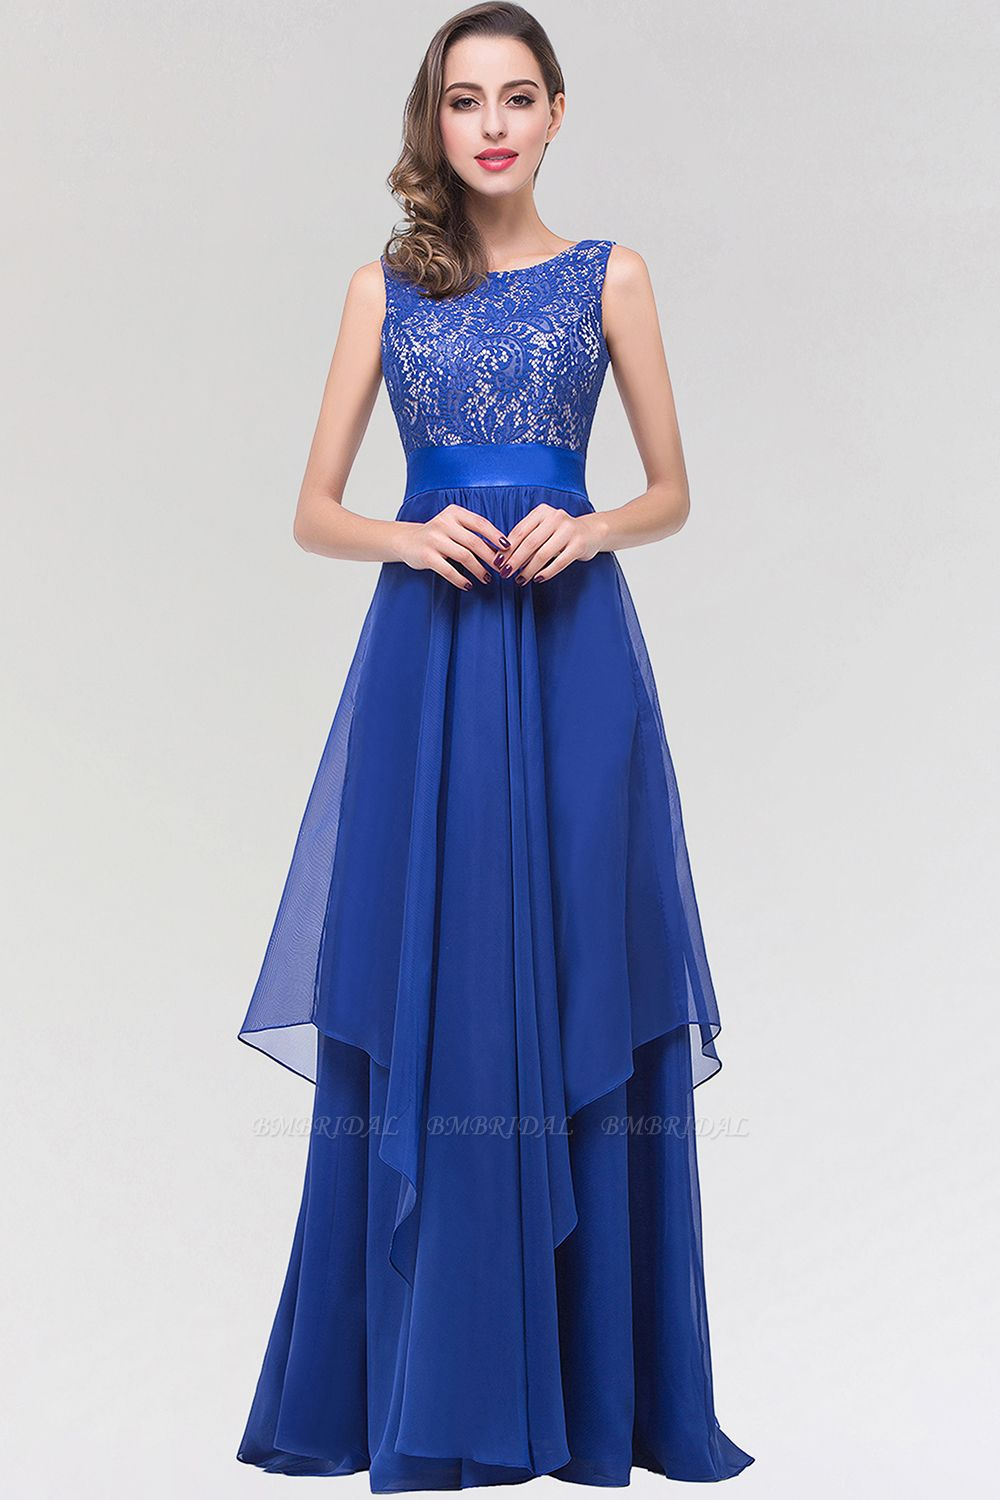 Elegant Lace Jewel Long Chiffon Bridesmaid Dress with Asymmetric Hemline